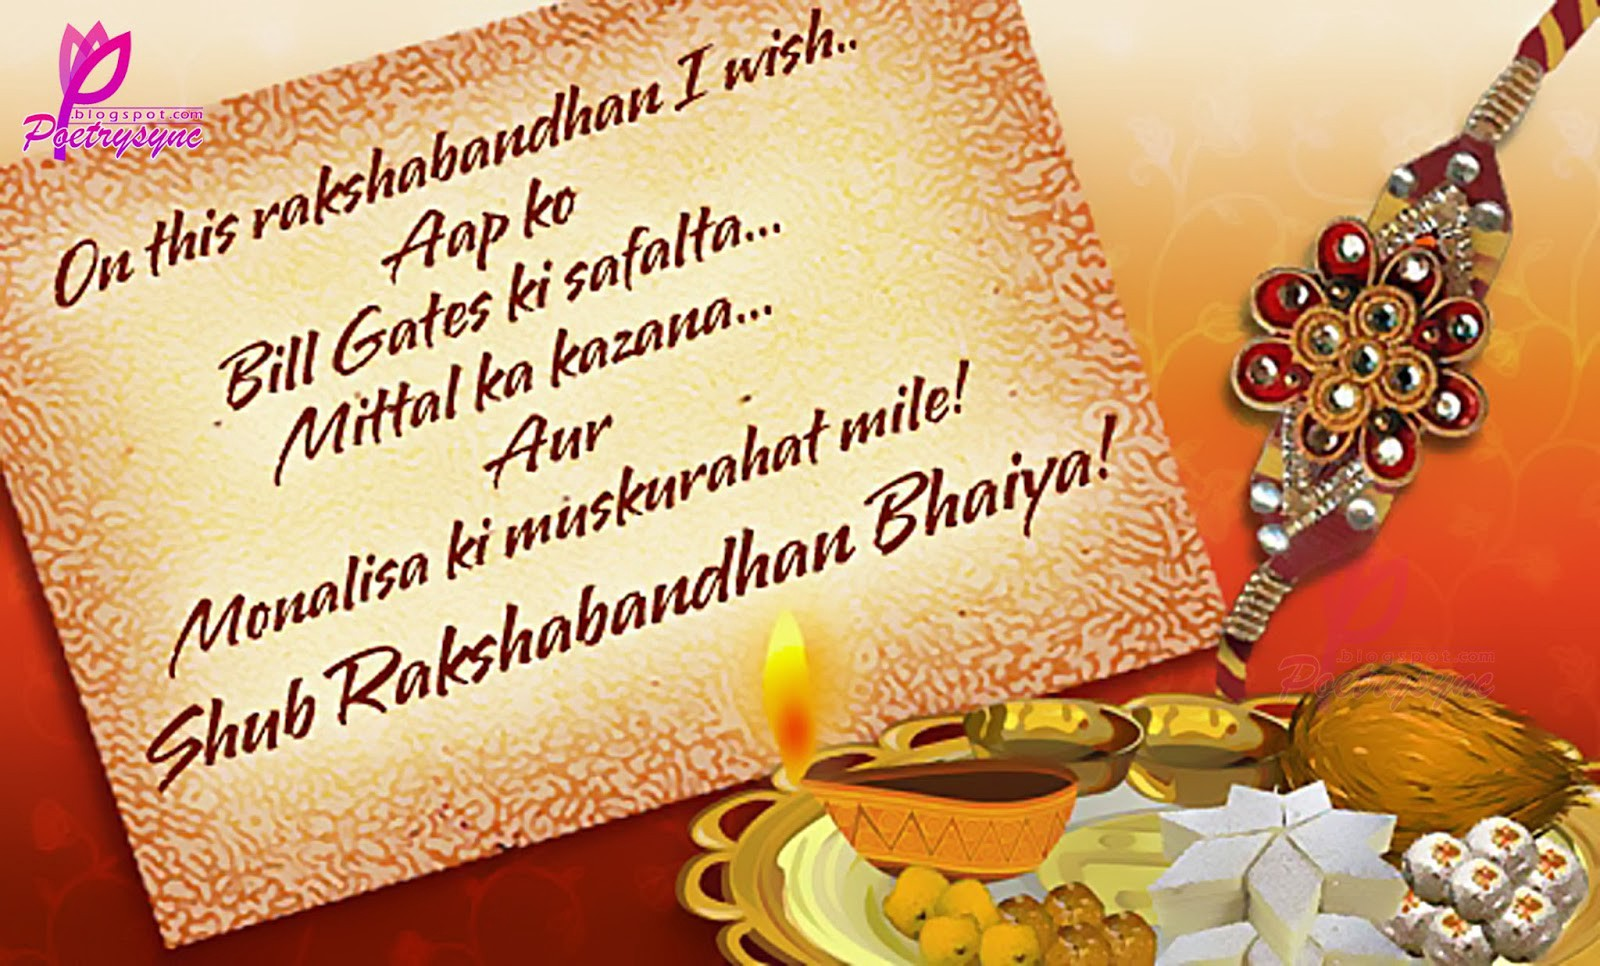 Surprise Your Brothersister This Rakhi With Attractive Gifts And